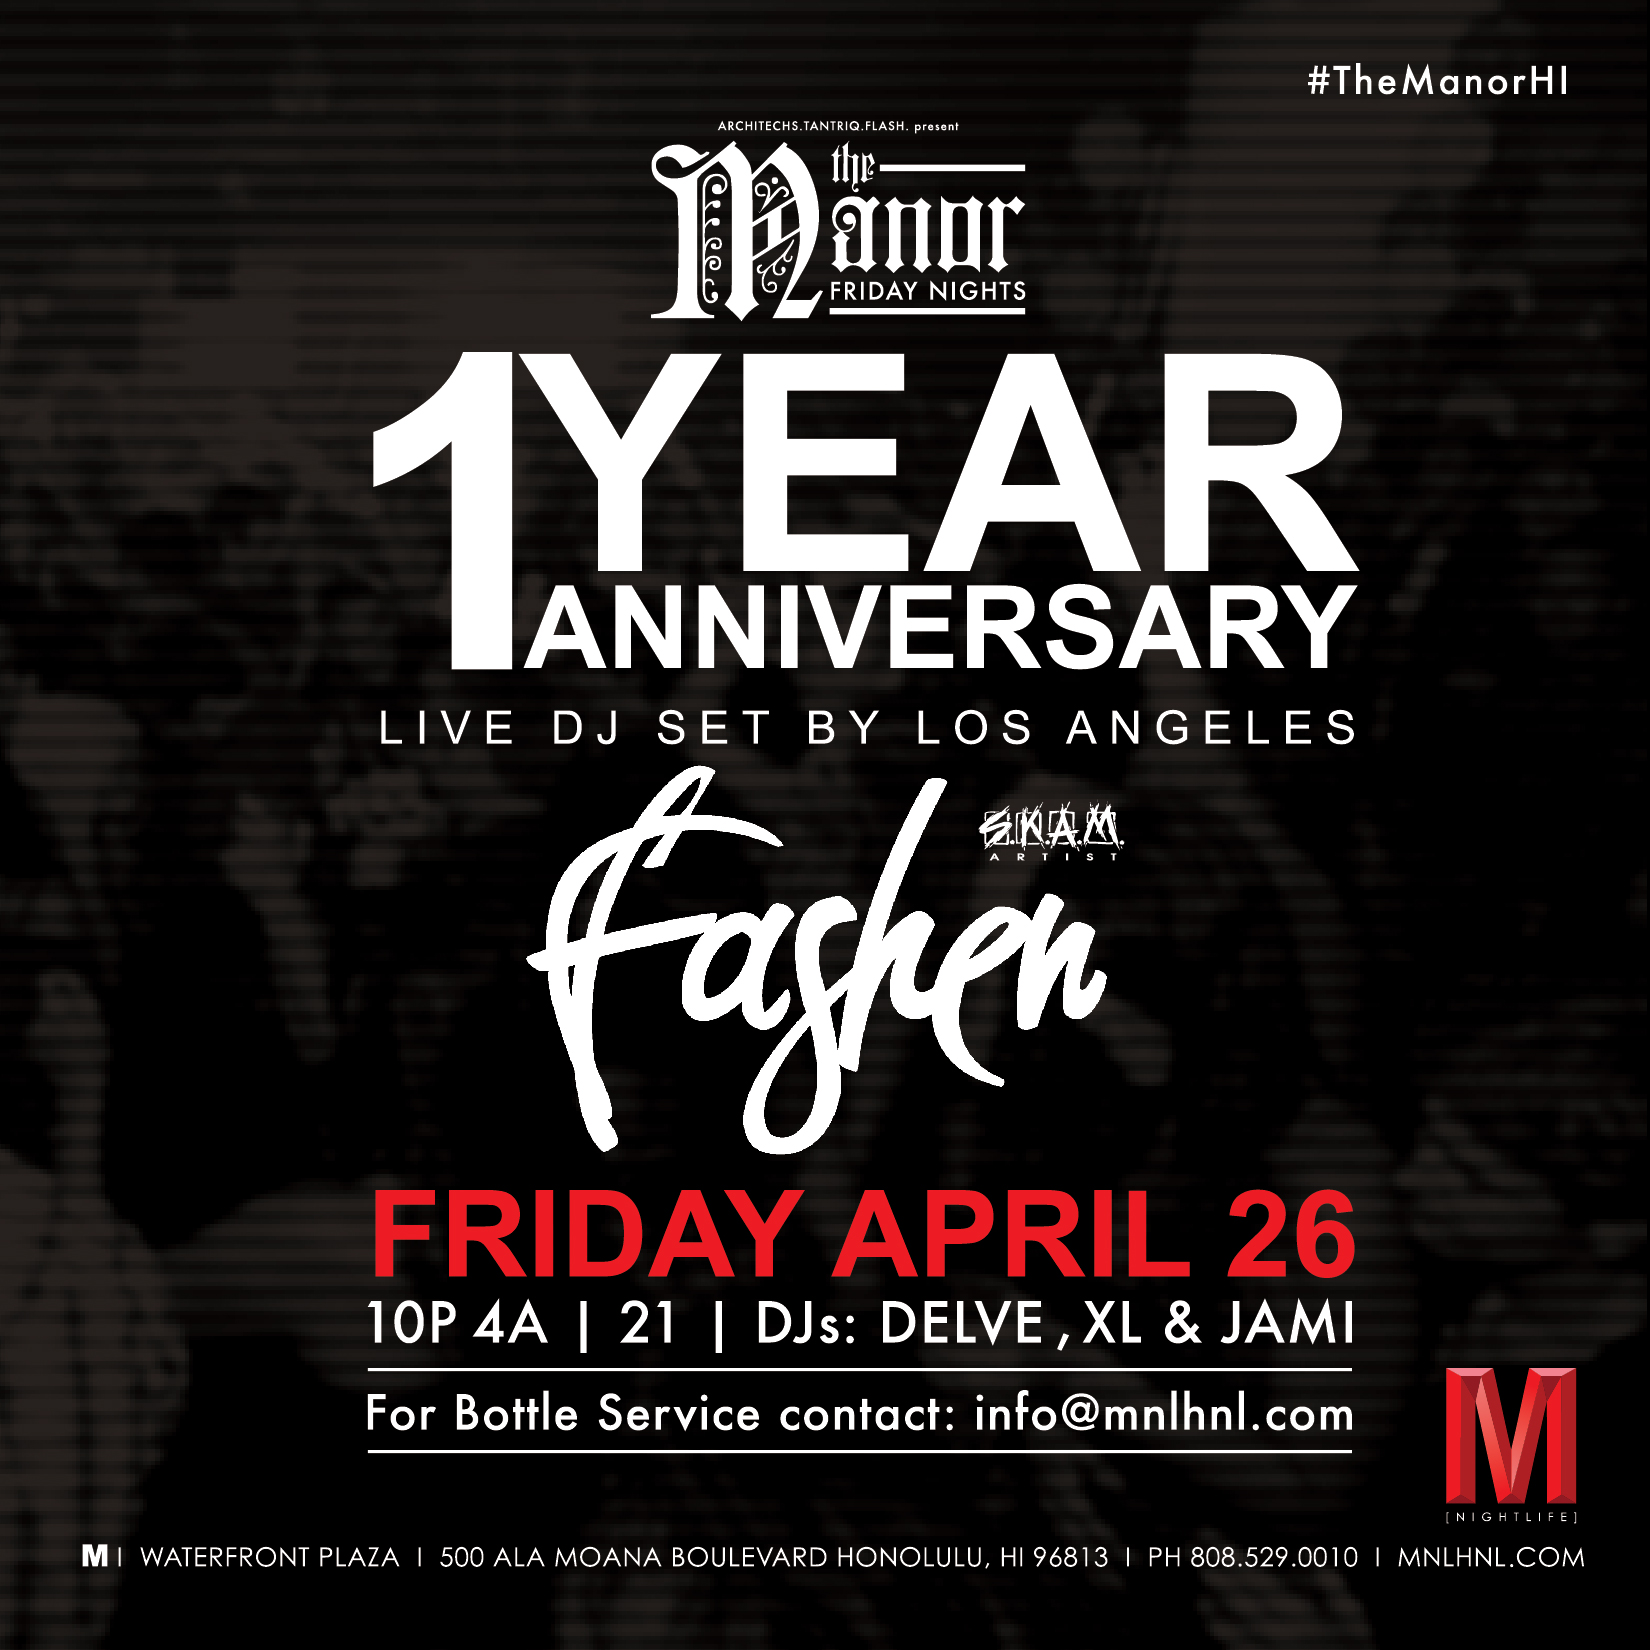 The Manor 1 Year Anniversary